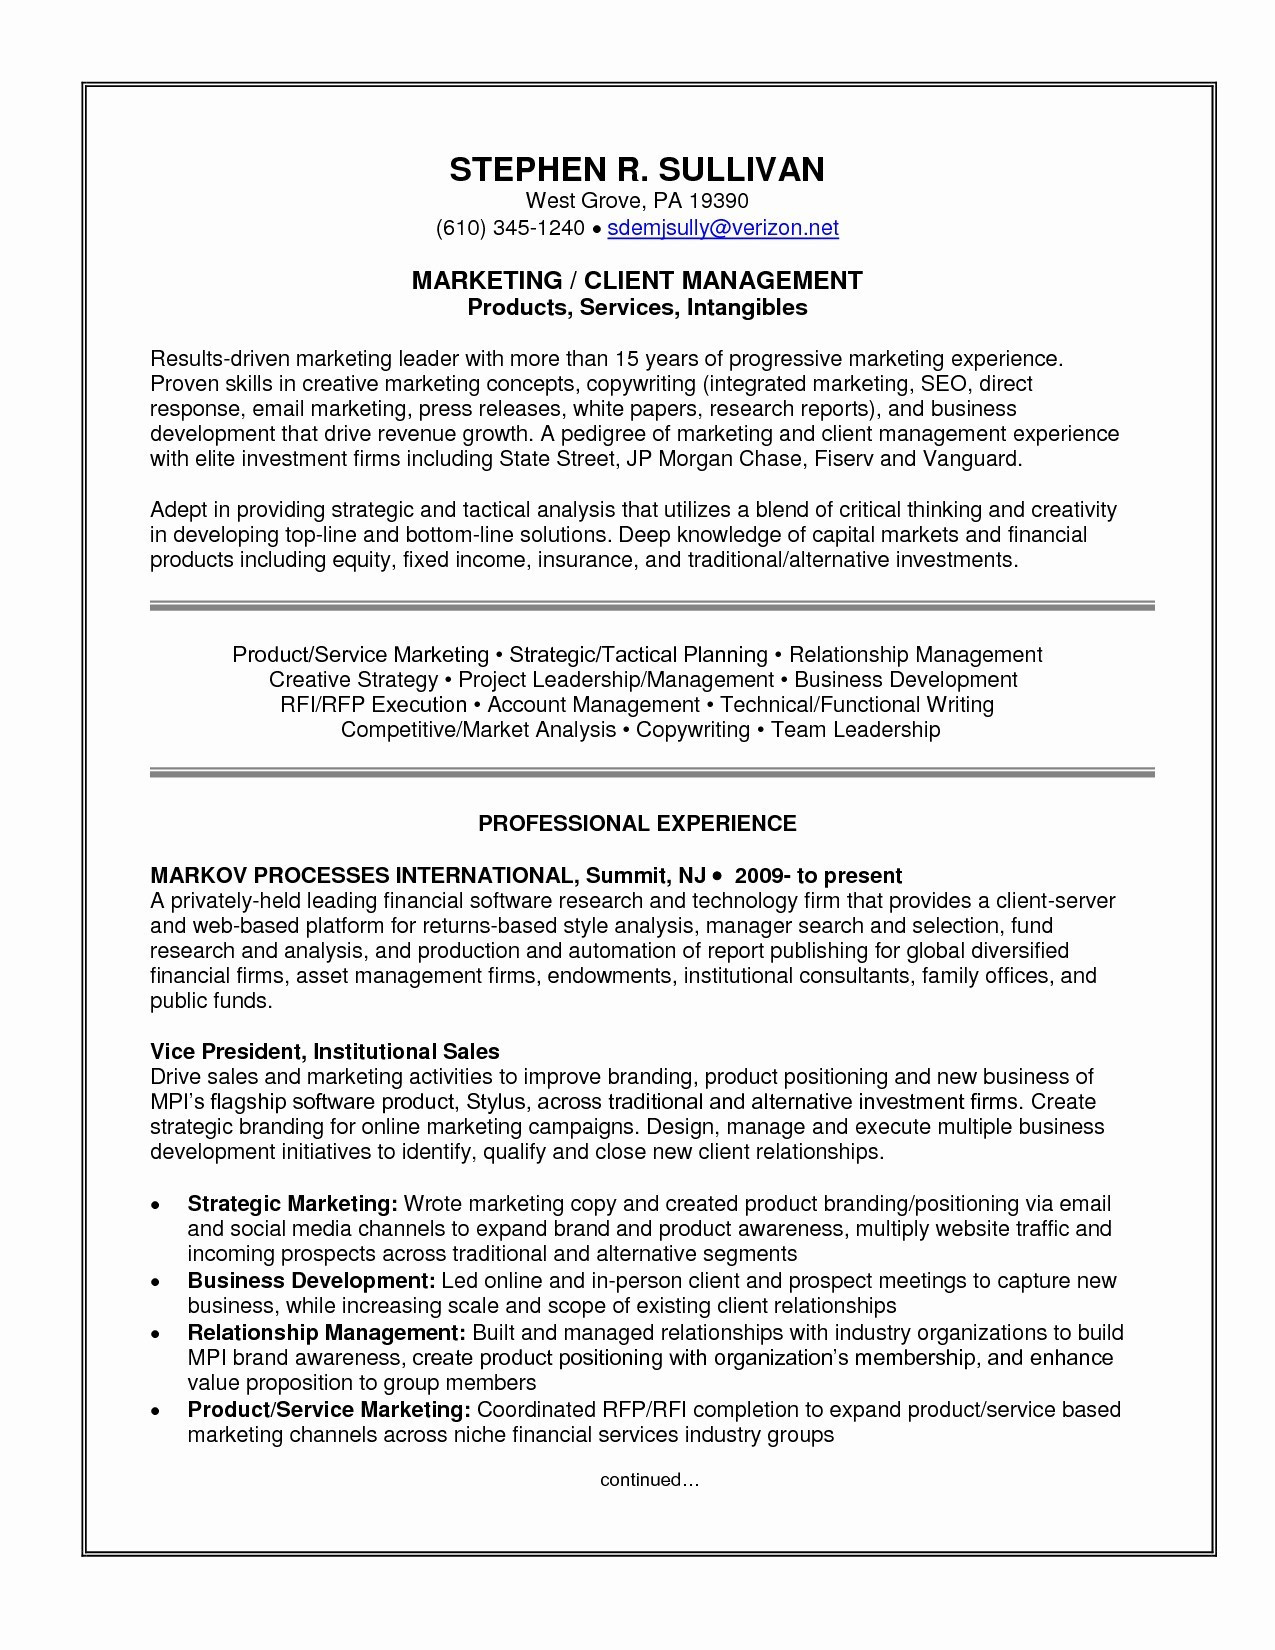 A Professional Resume - Experienced Professional Resume Template Best top Resume Template